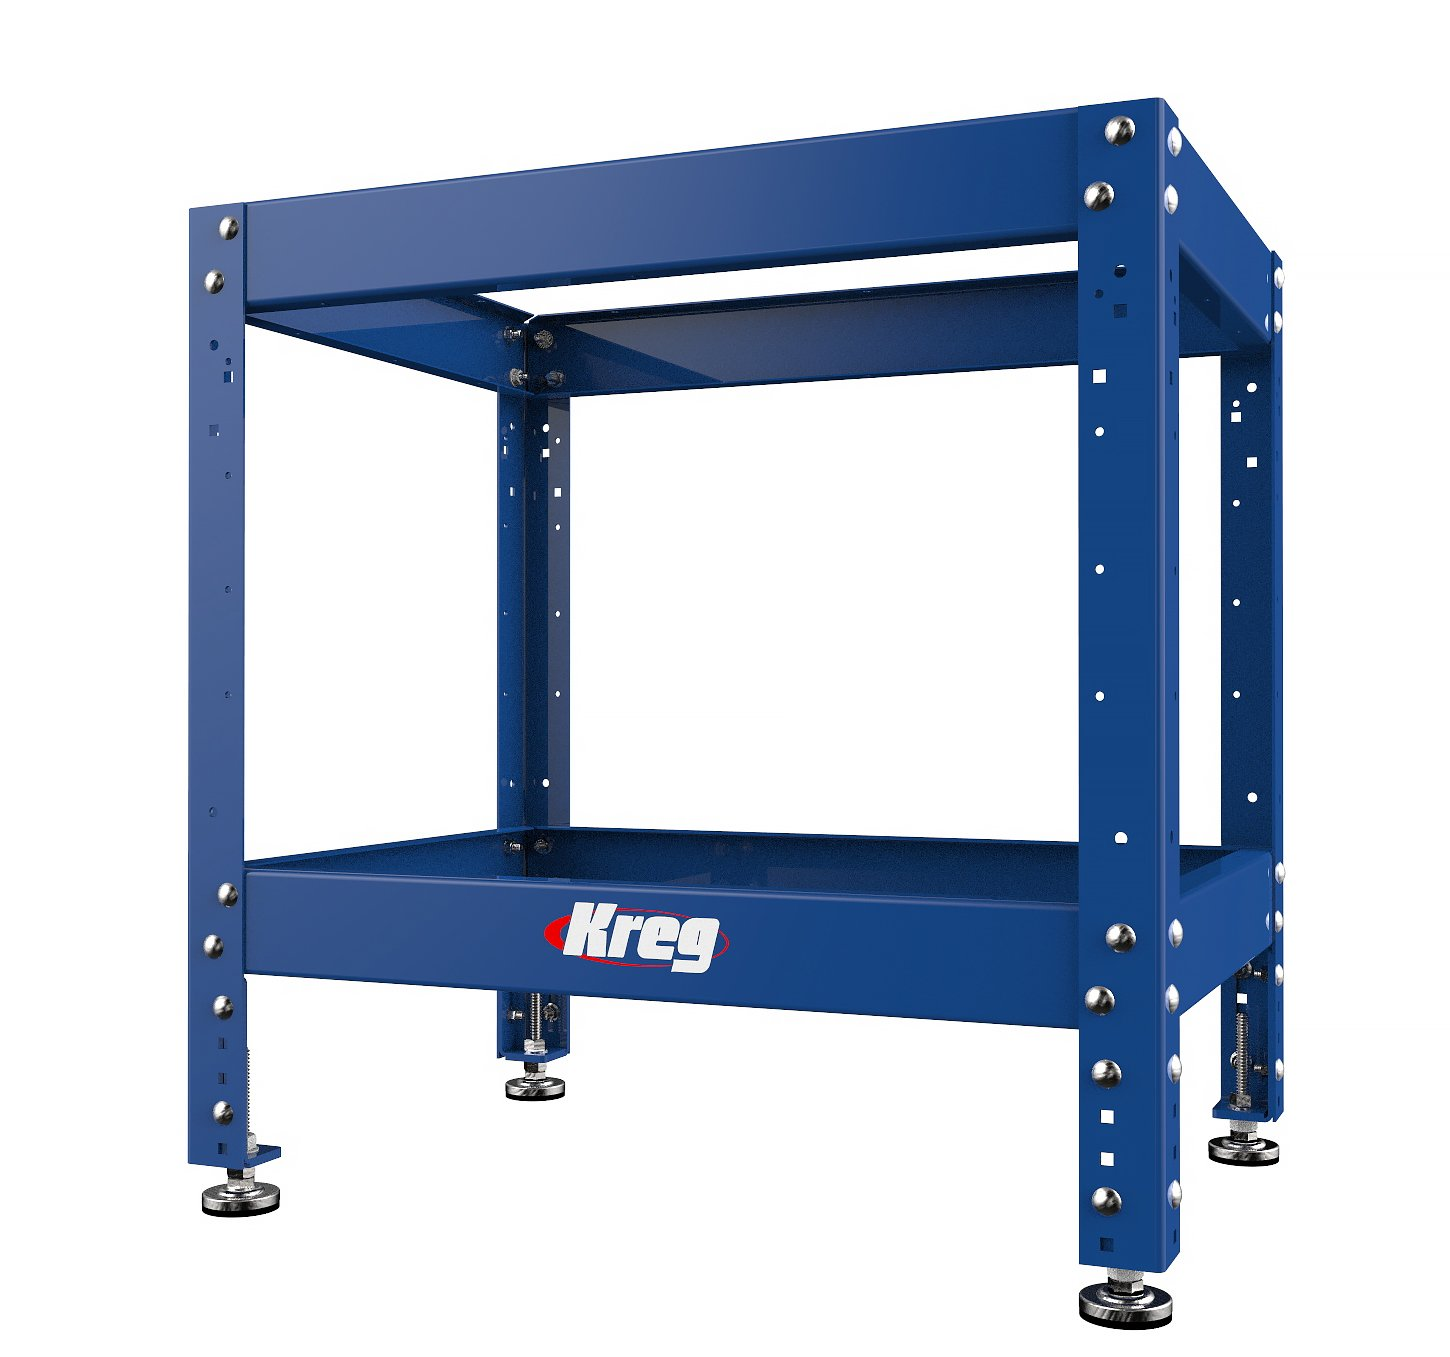 Kreg KRS1035 Router Table Stand